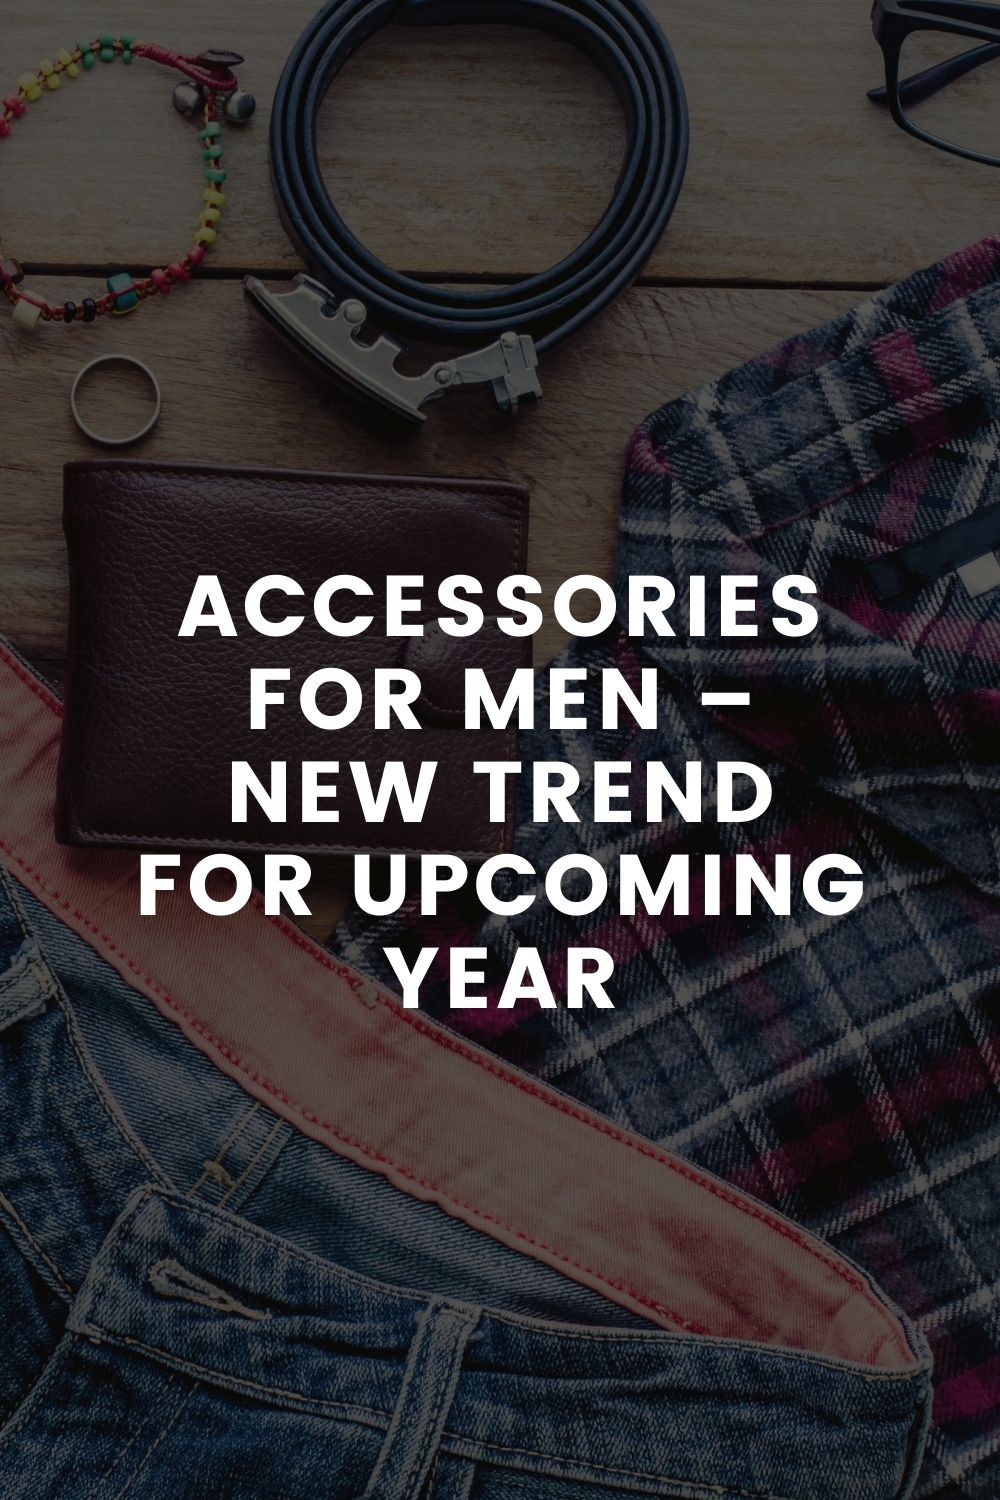 Accessories for Men – New Trend for Upcoming Year